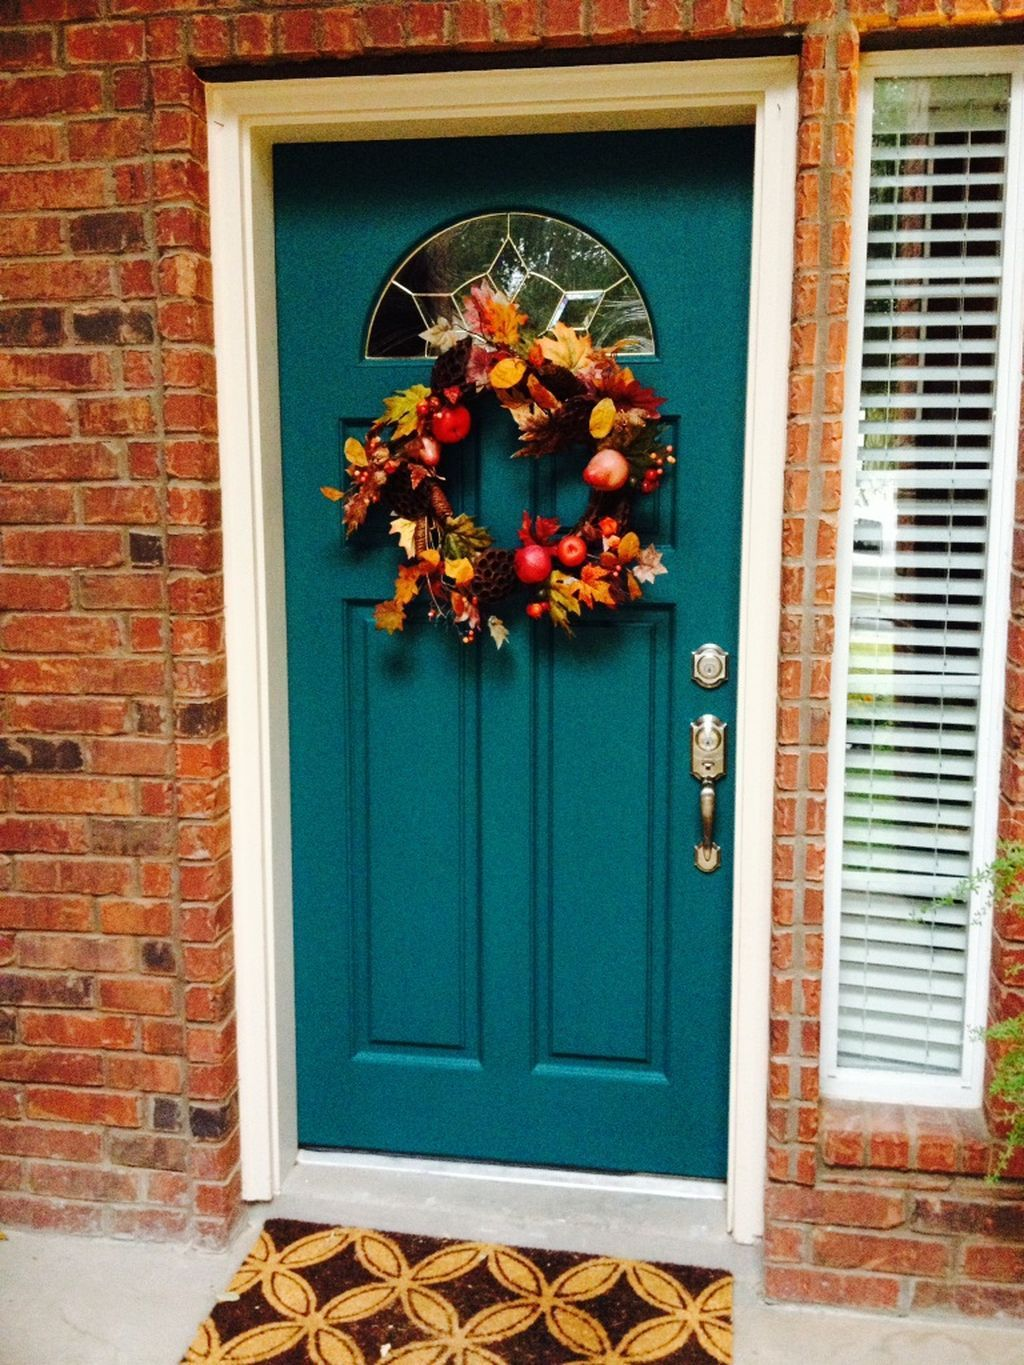 54 Exterior Paint Color Ideas With Red Brick | Front door ... on Door Color Ideas  id=42463